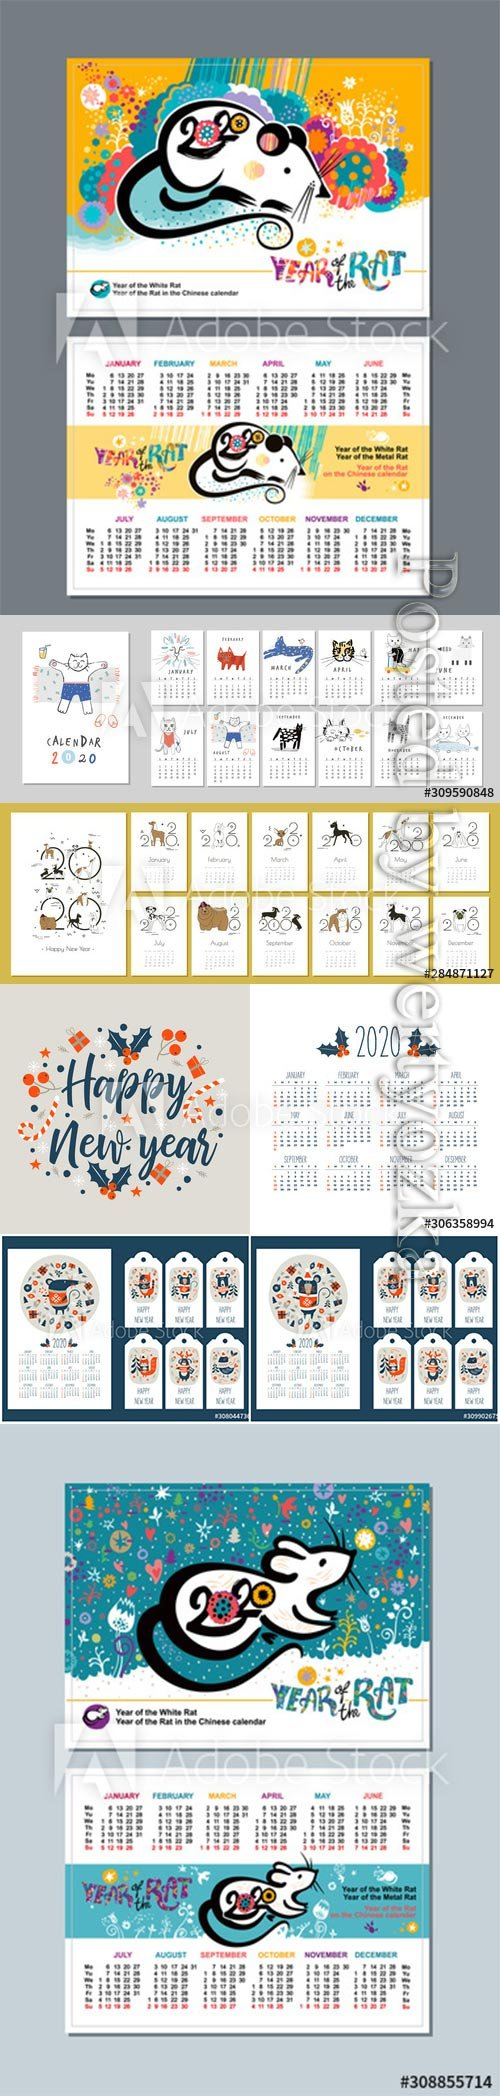 2020 calendar with the symbol of the year of the mouse